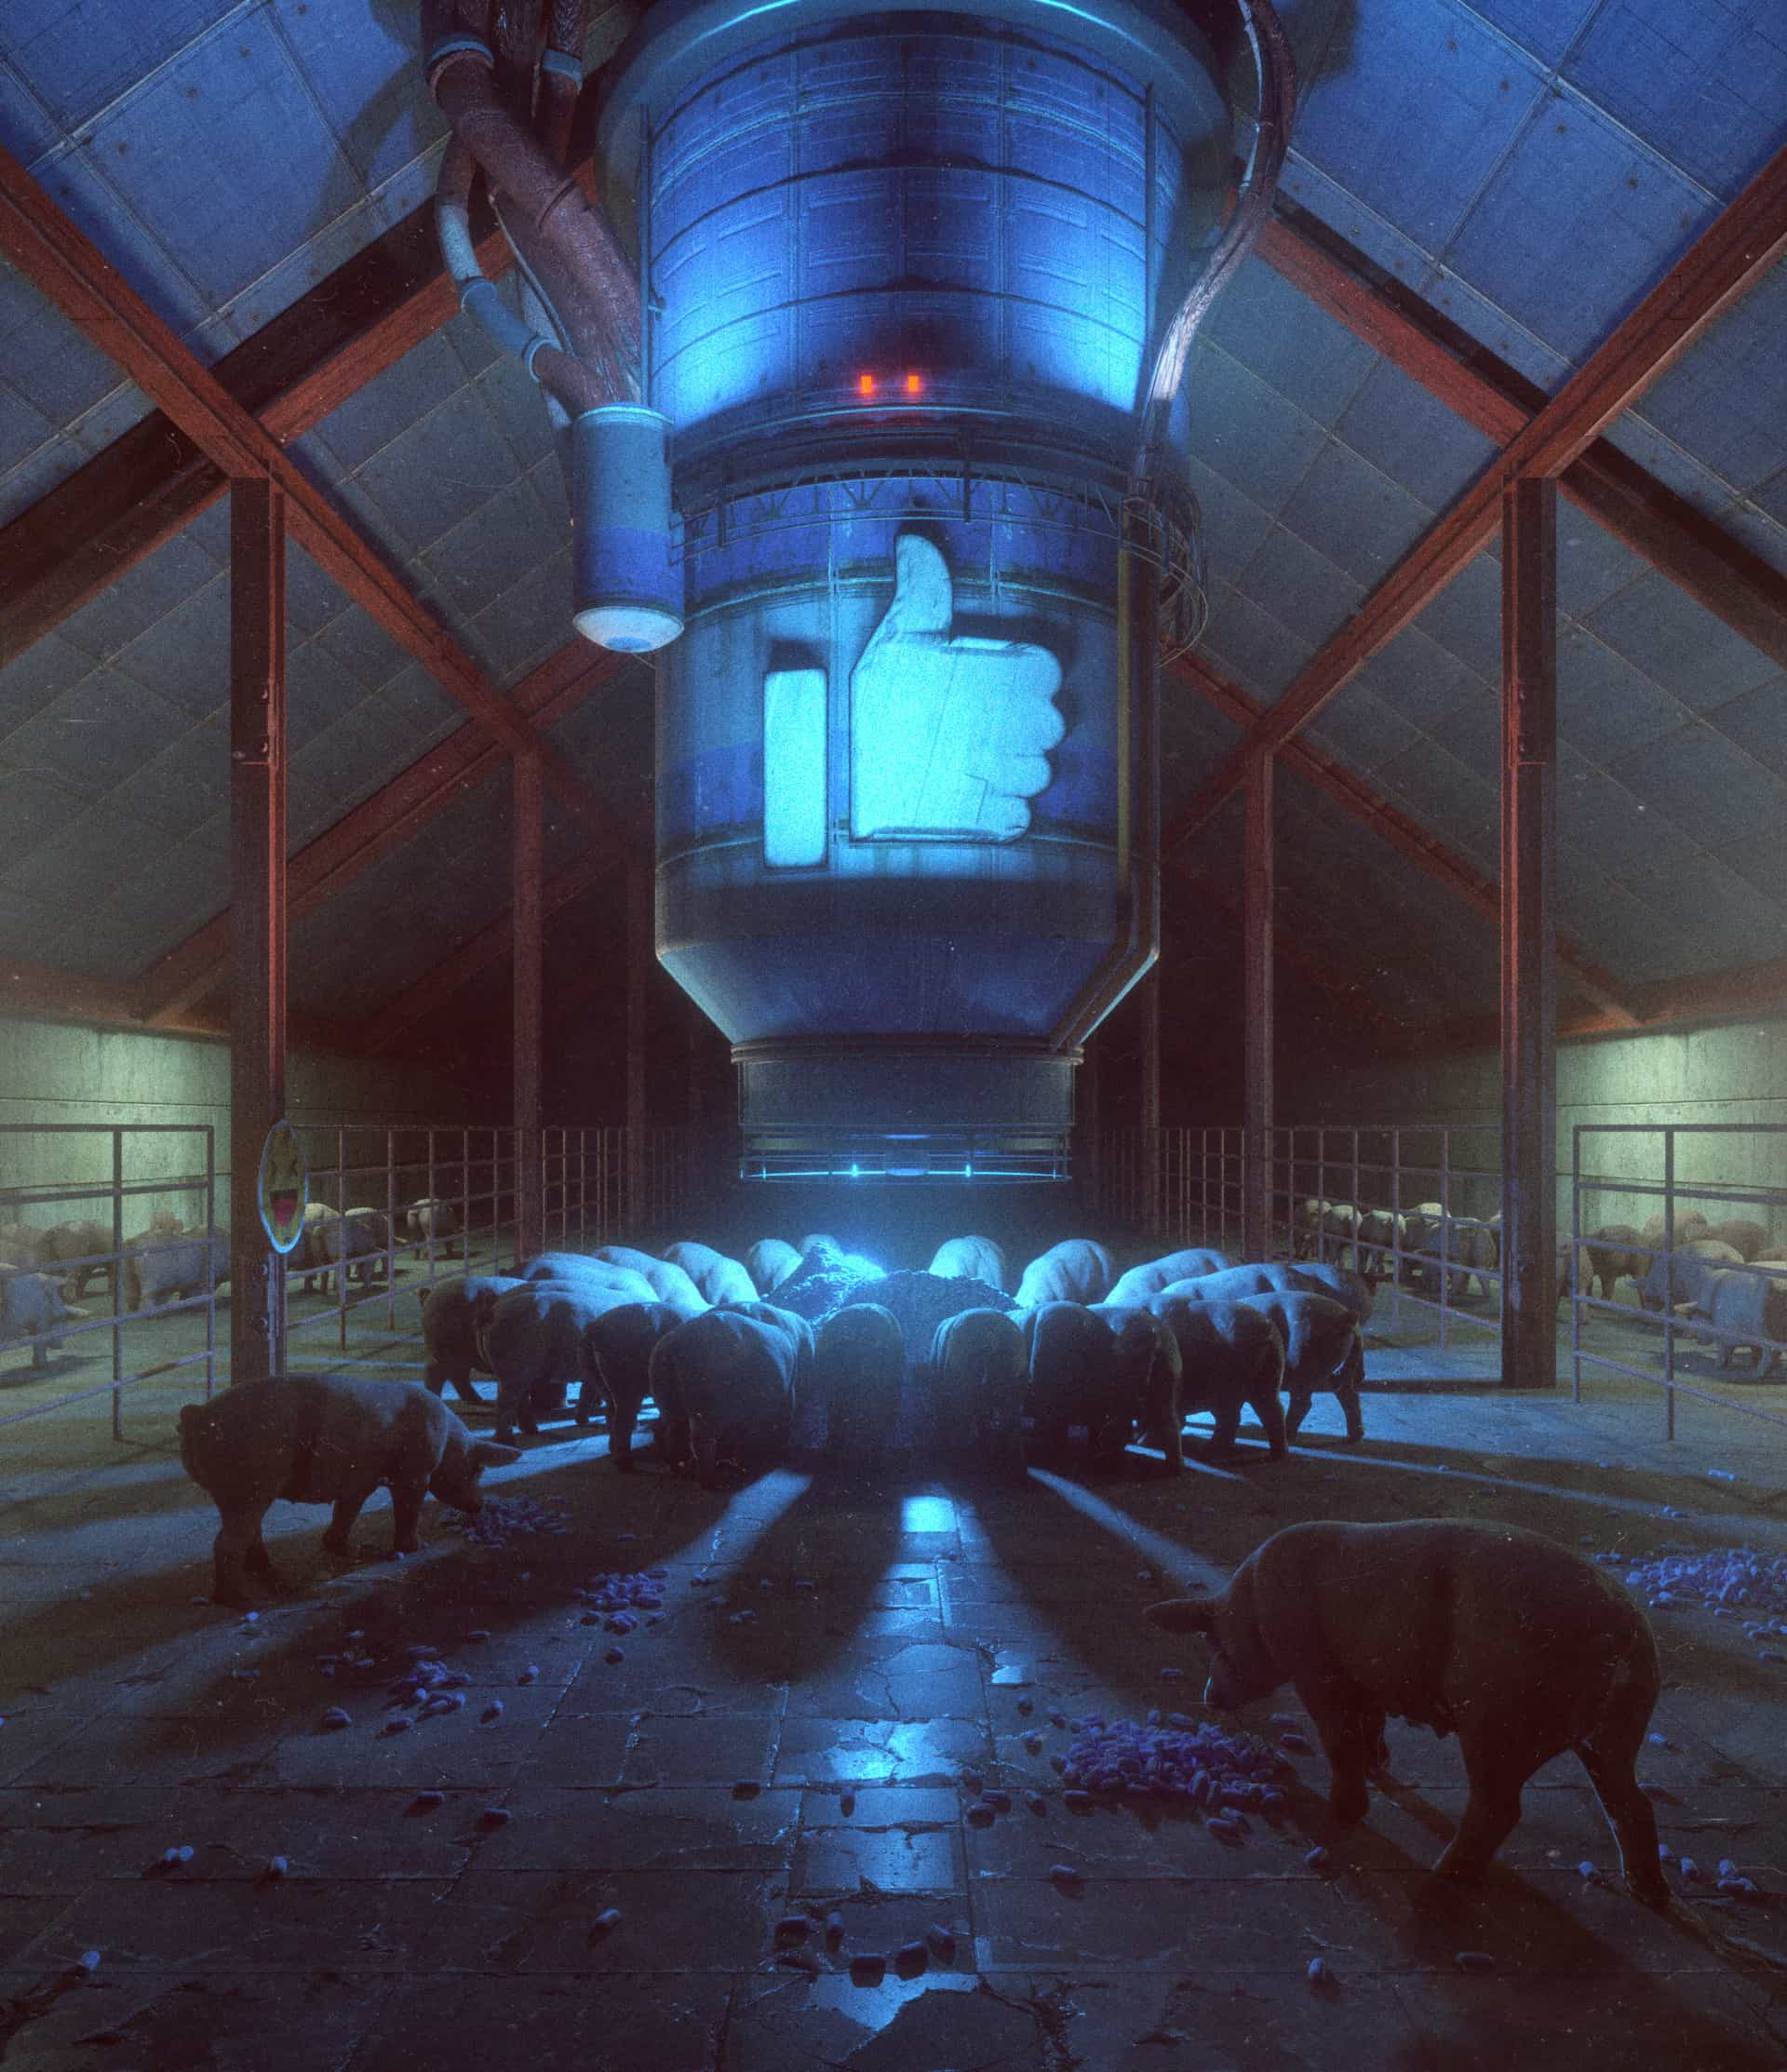 News Feed, by Beeple